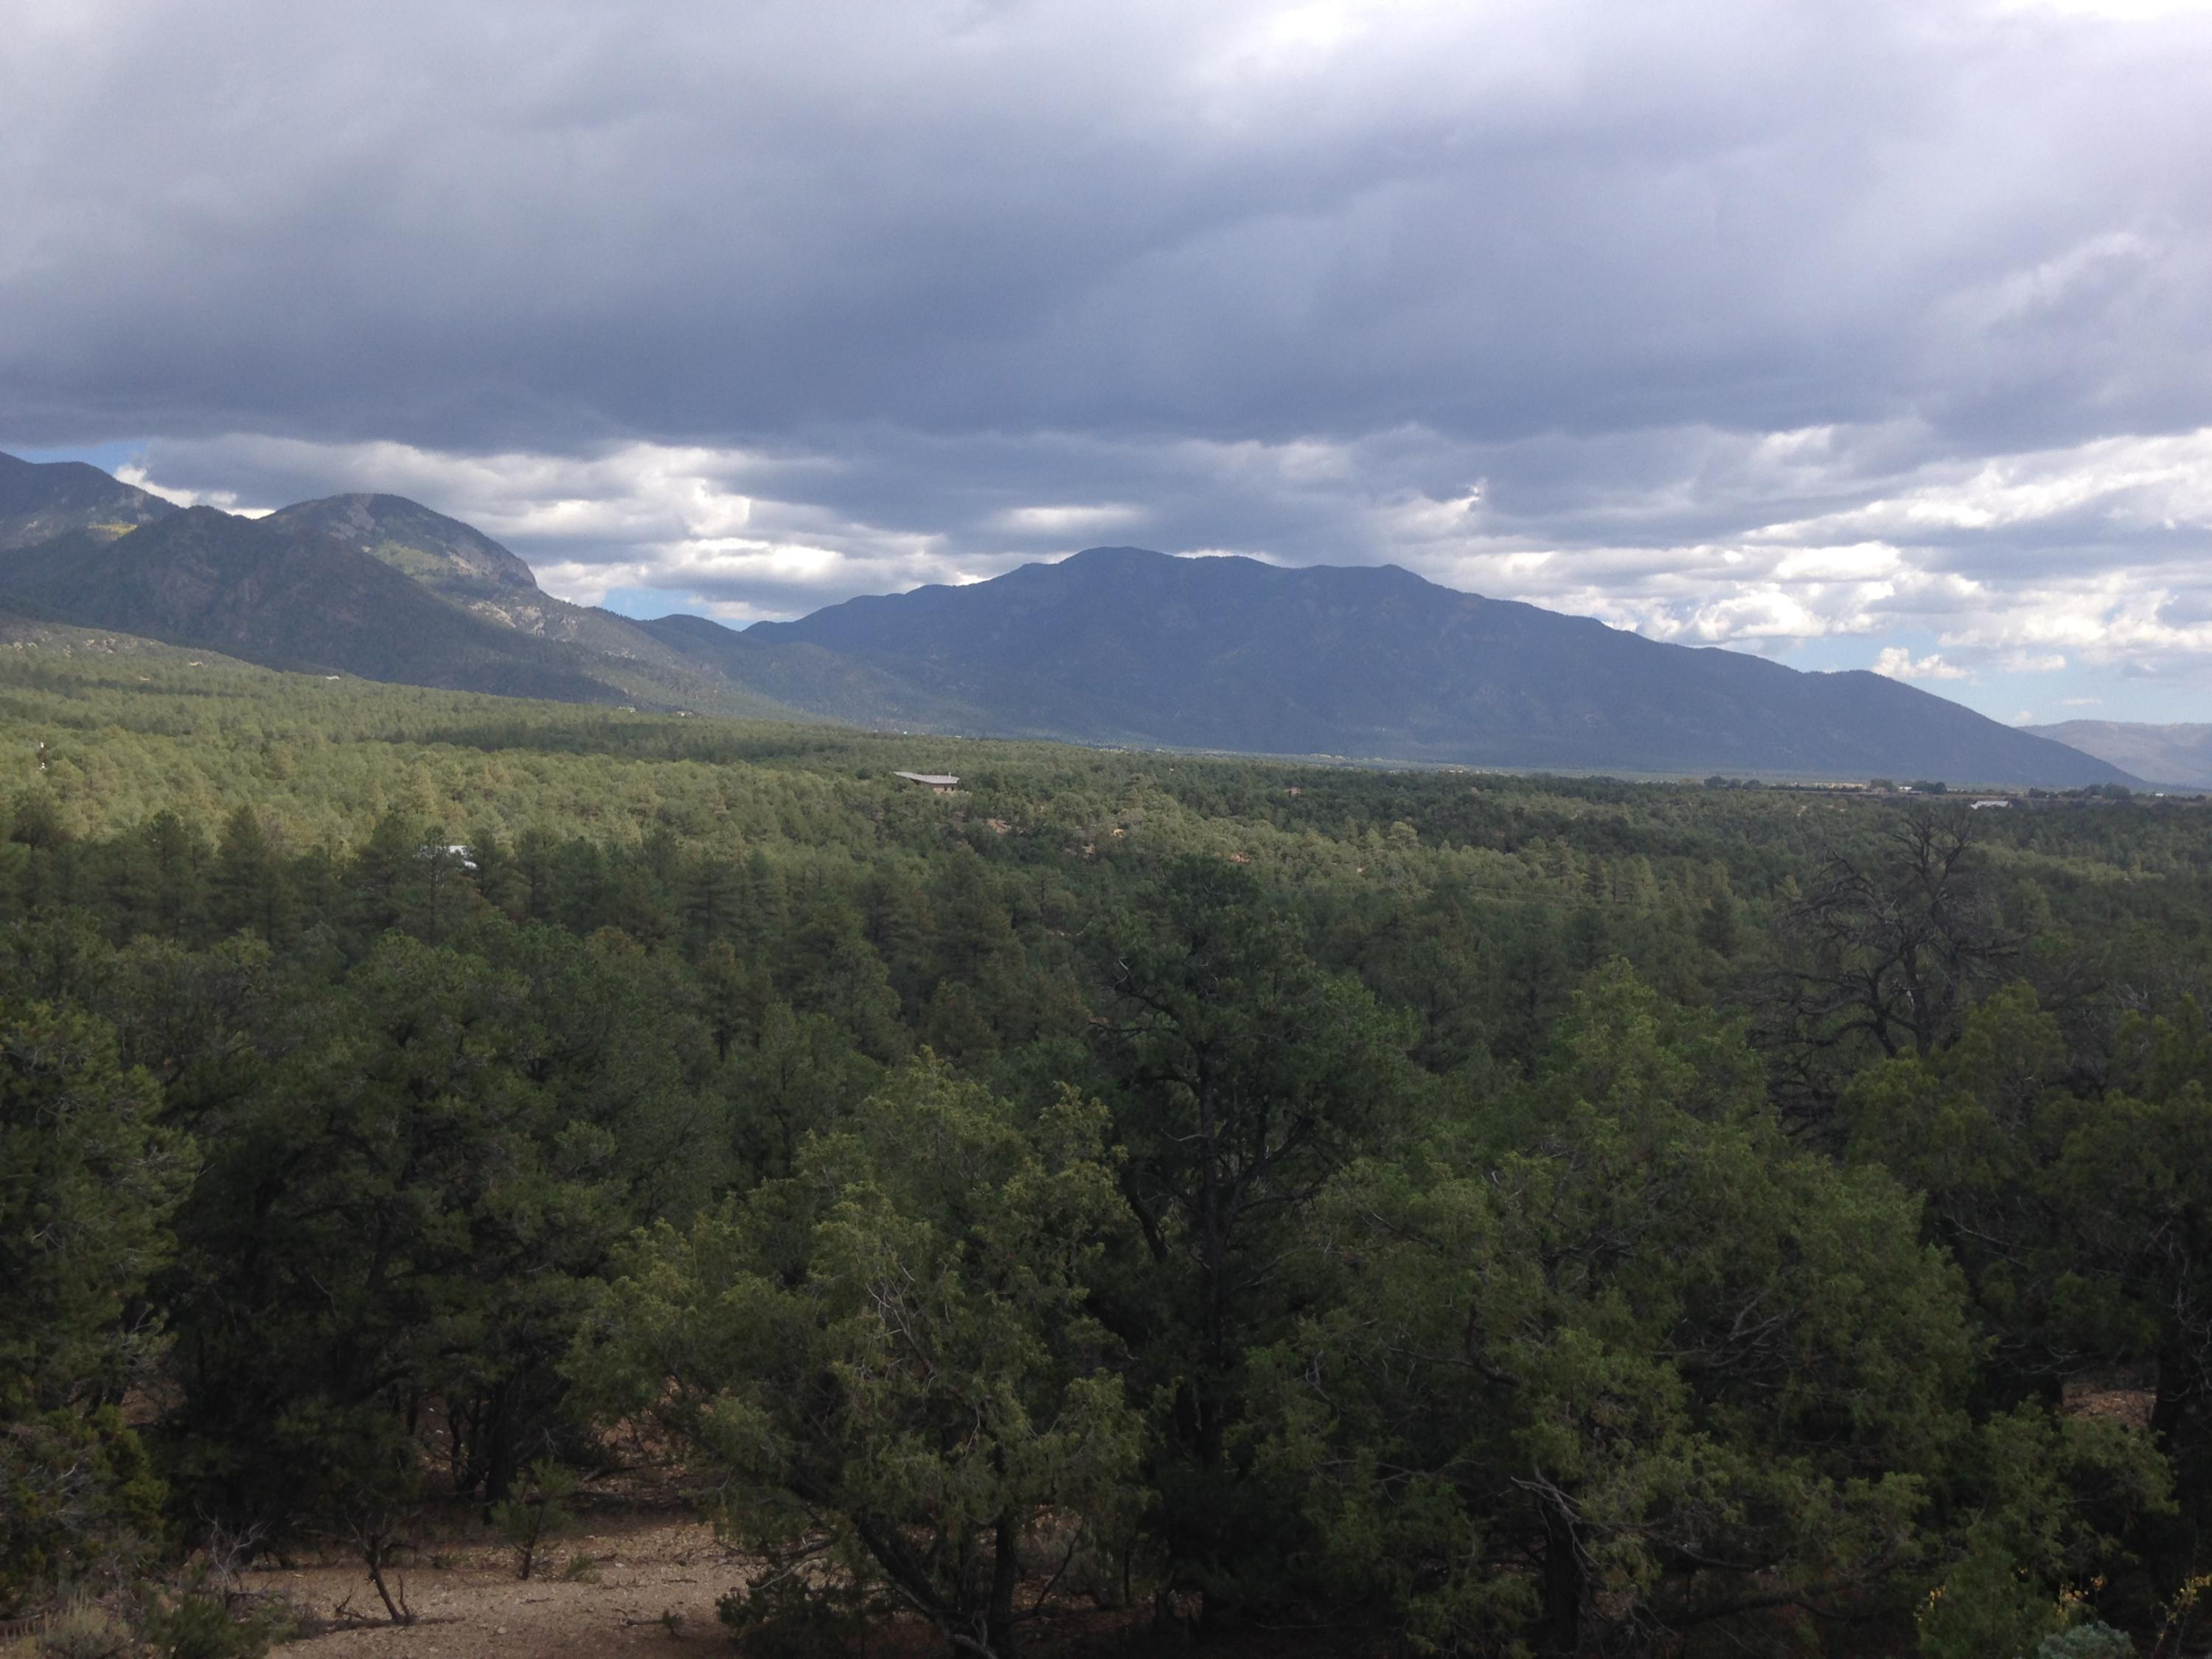 XX Deer Mesa Road, Taos, NM 87571 - Taos, NM real estate listing